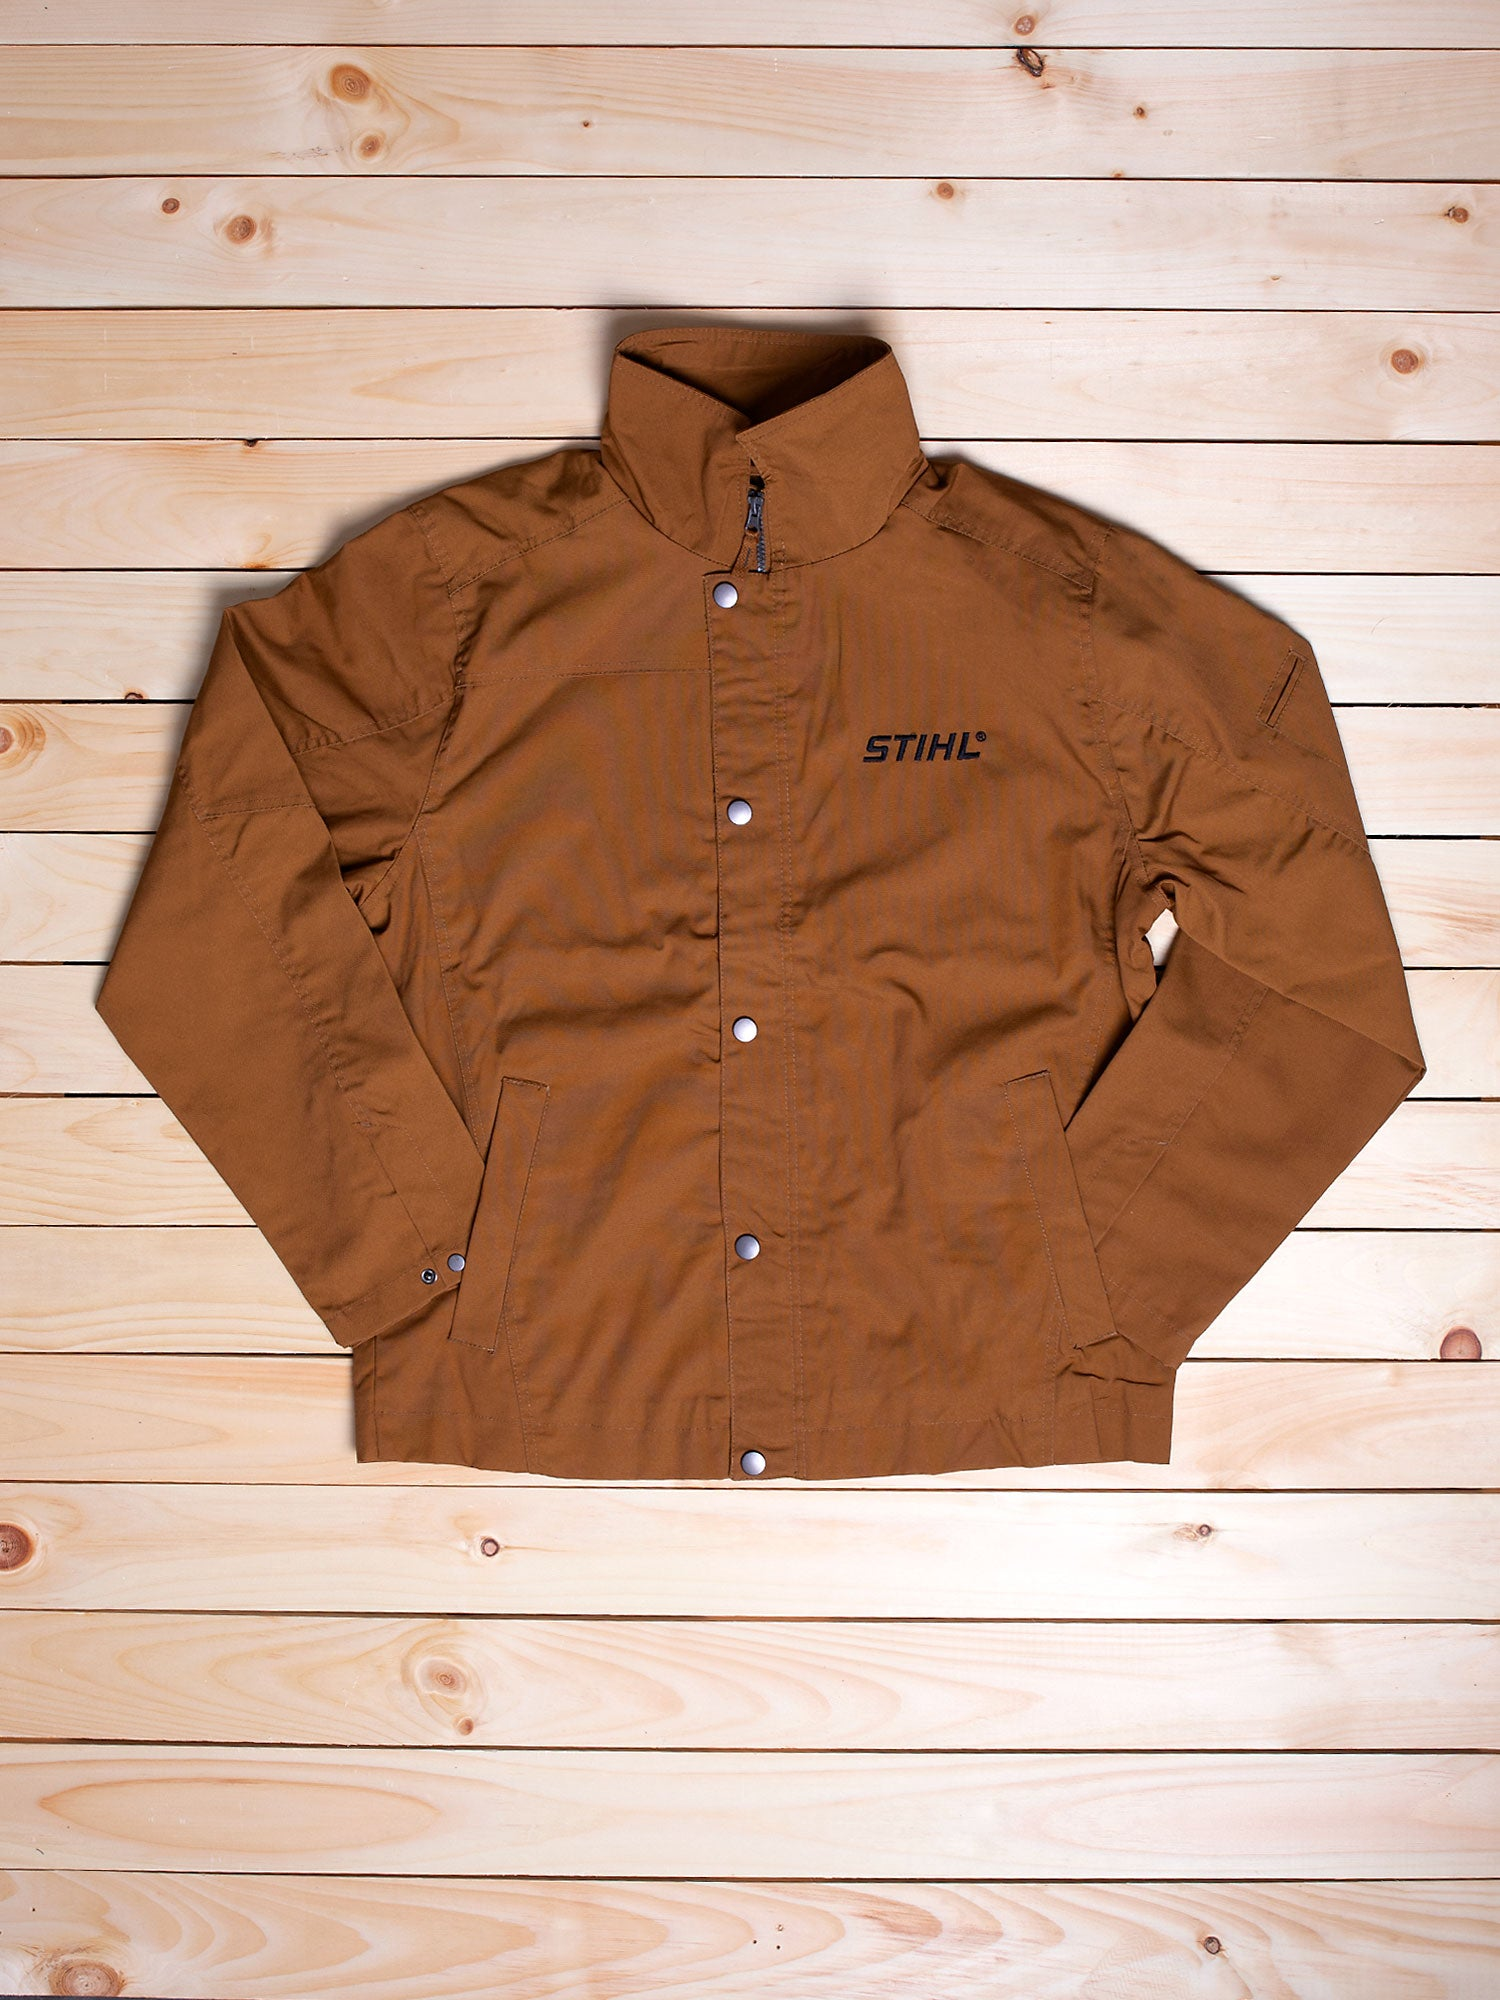 STIHL Canvas Work Jacket